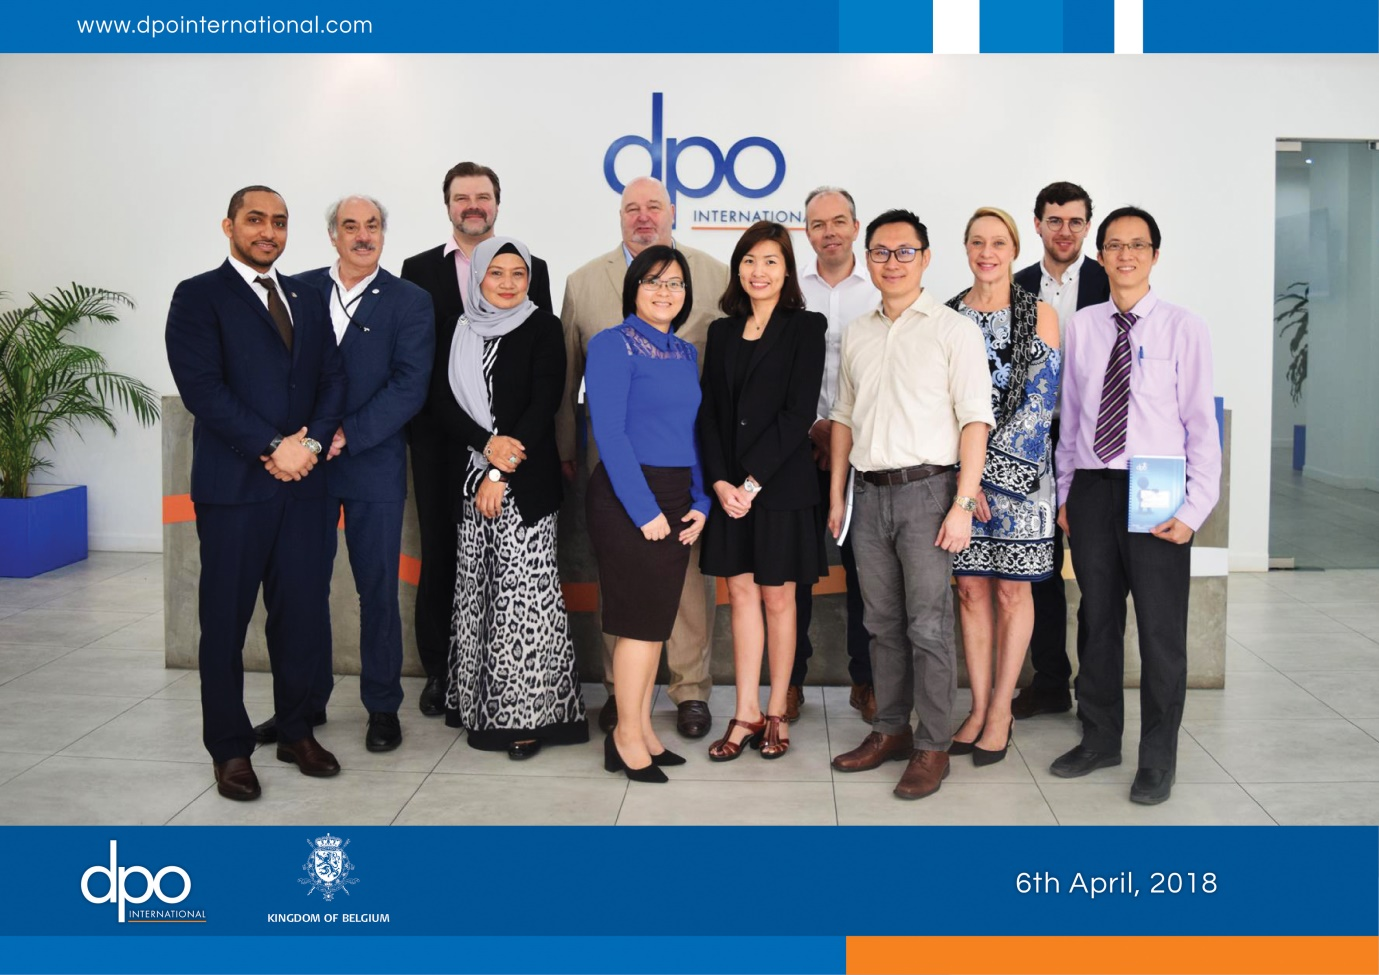 DPO International welcomes the Belgian Delegation